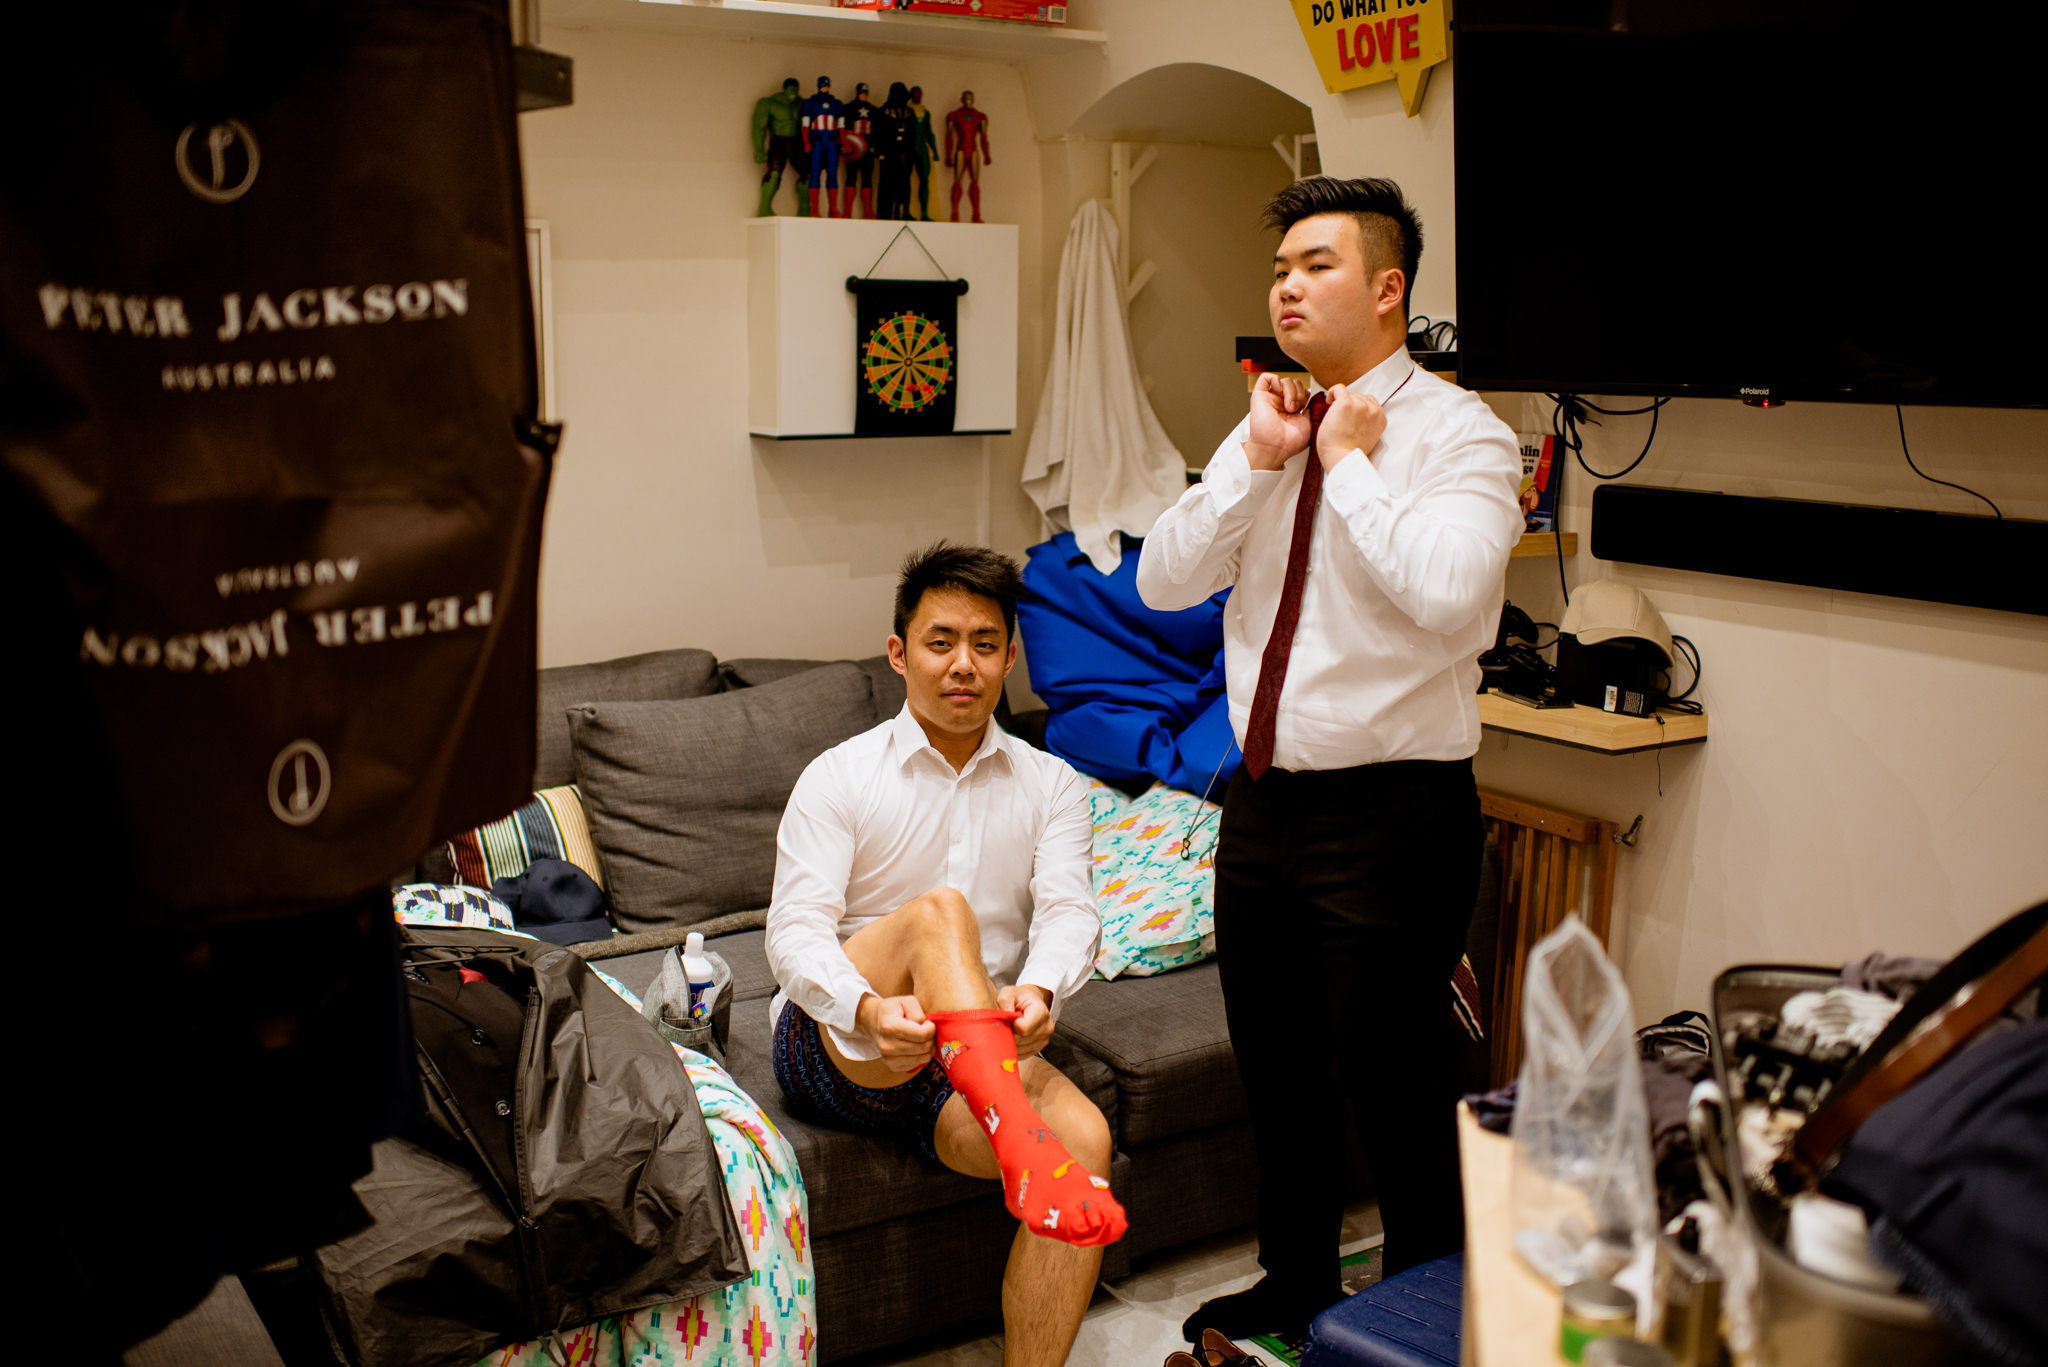 Two groomsmen get dressed in a messy room.